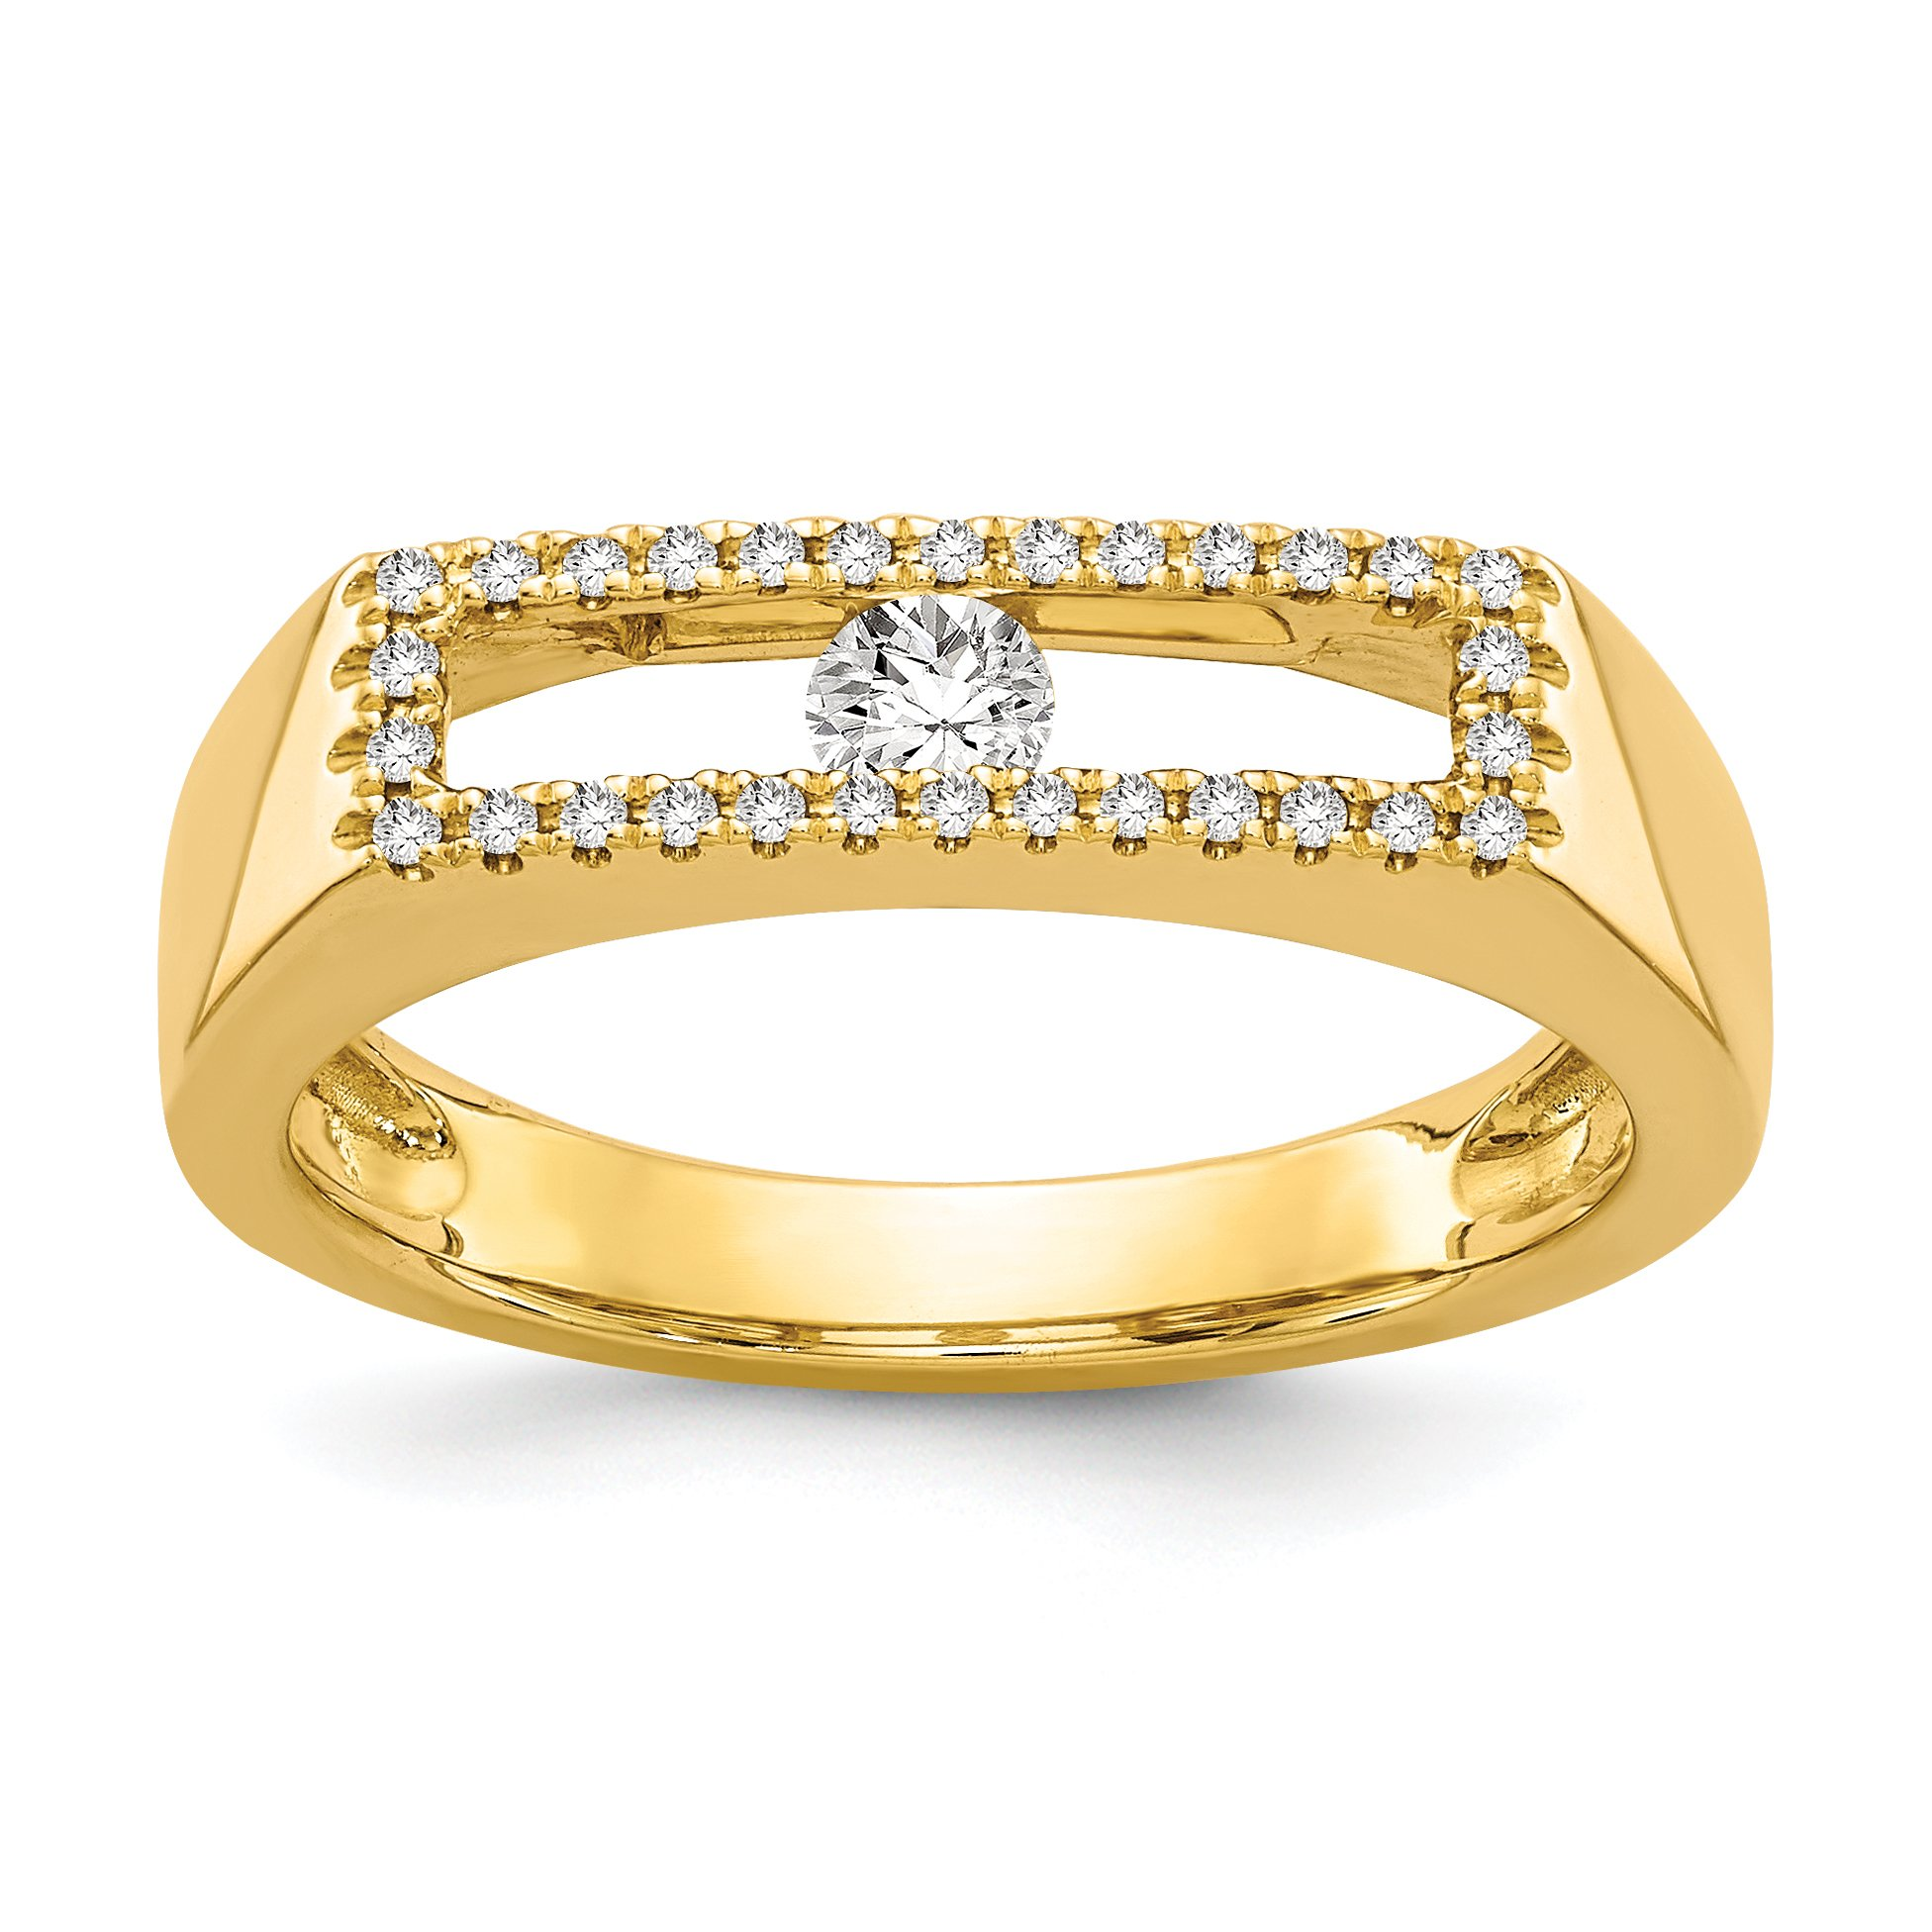 ICE CARATS 14k Yellow Gold Diamond Band Ring Size 7.00 Fine Jewelry Gift Set For Women Heart